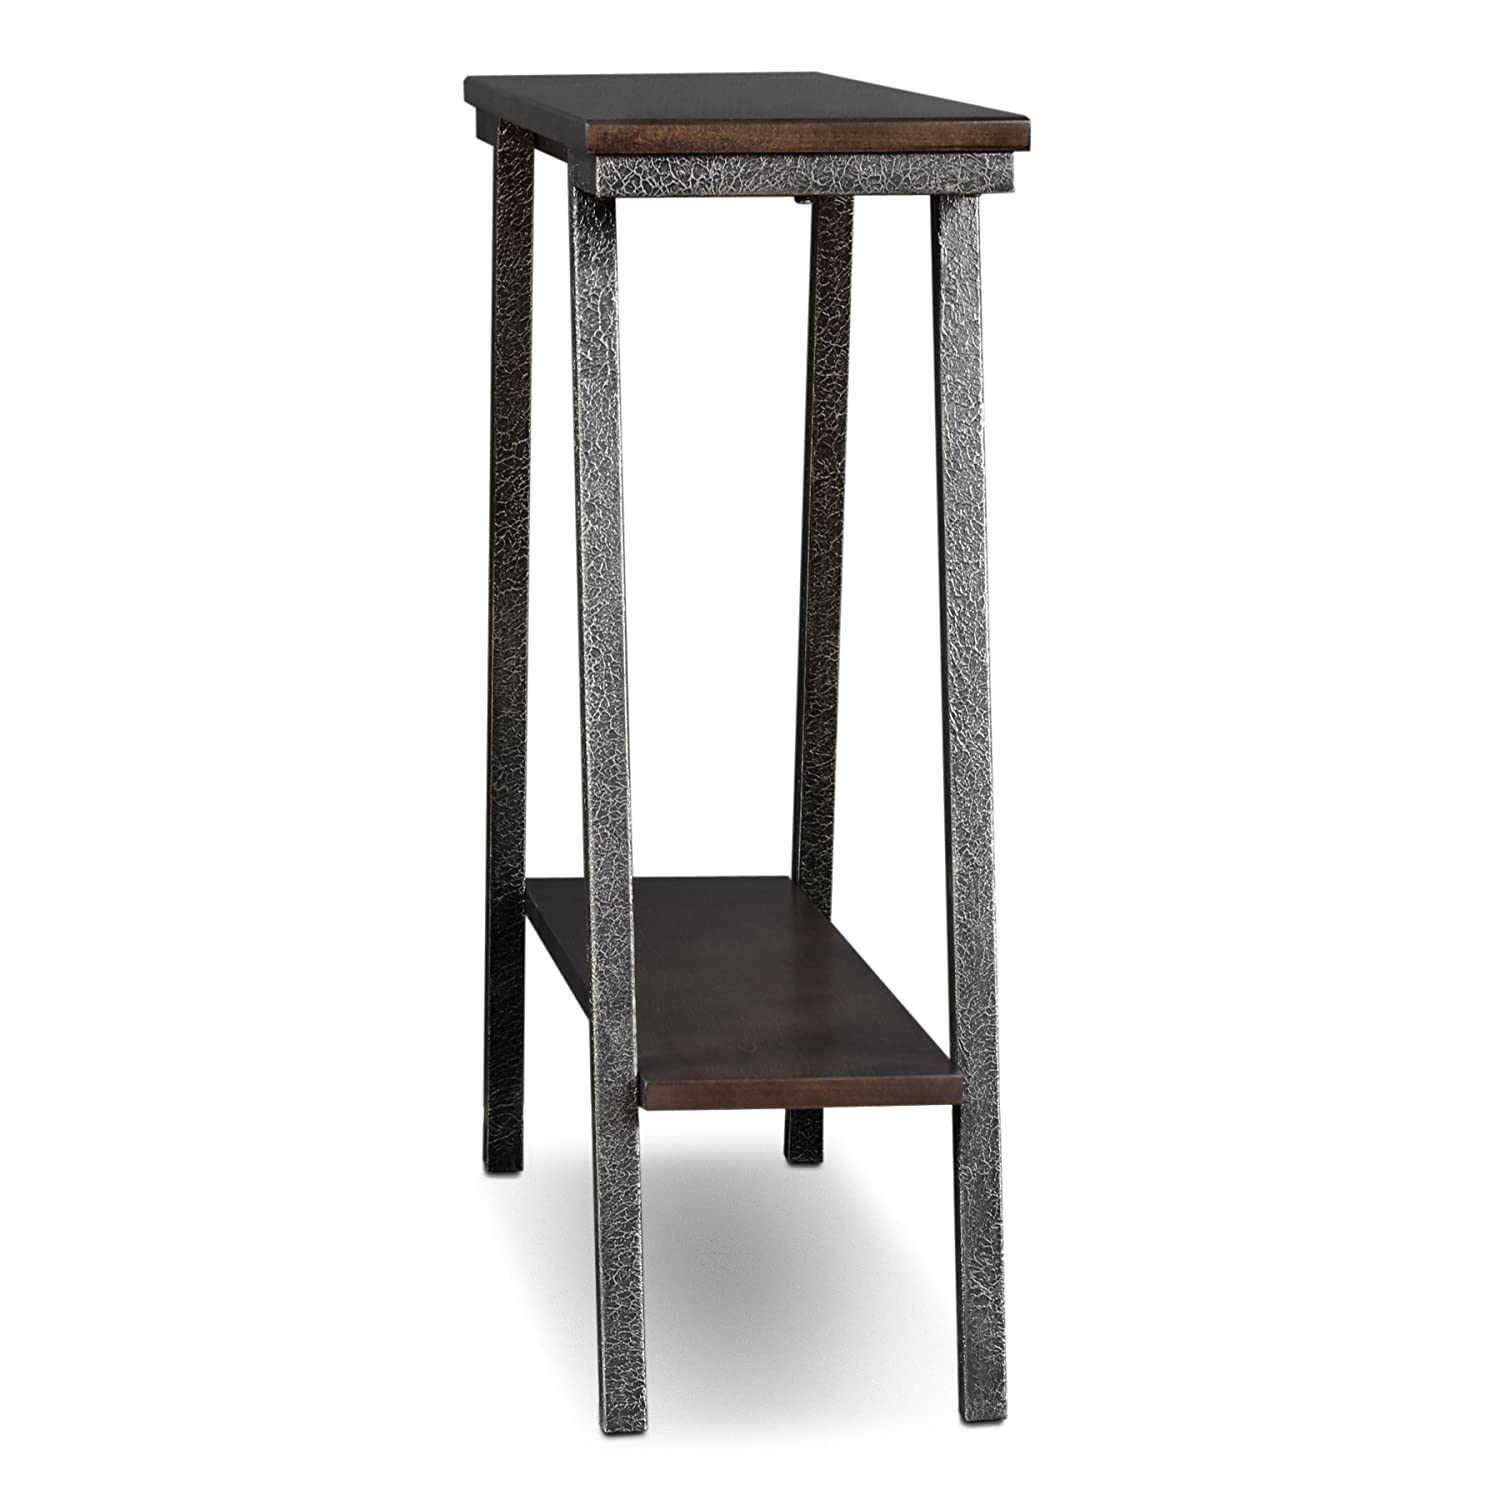 Leick 11431 Empiria Modern Industrial Hall Stand – Walnut